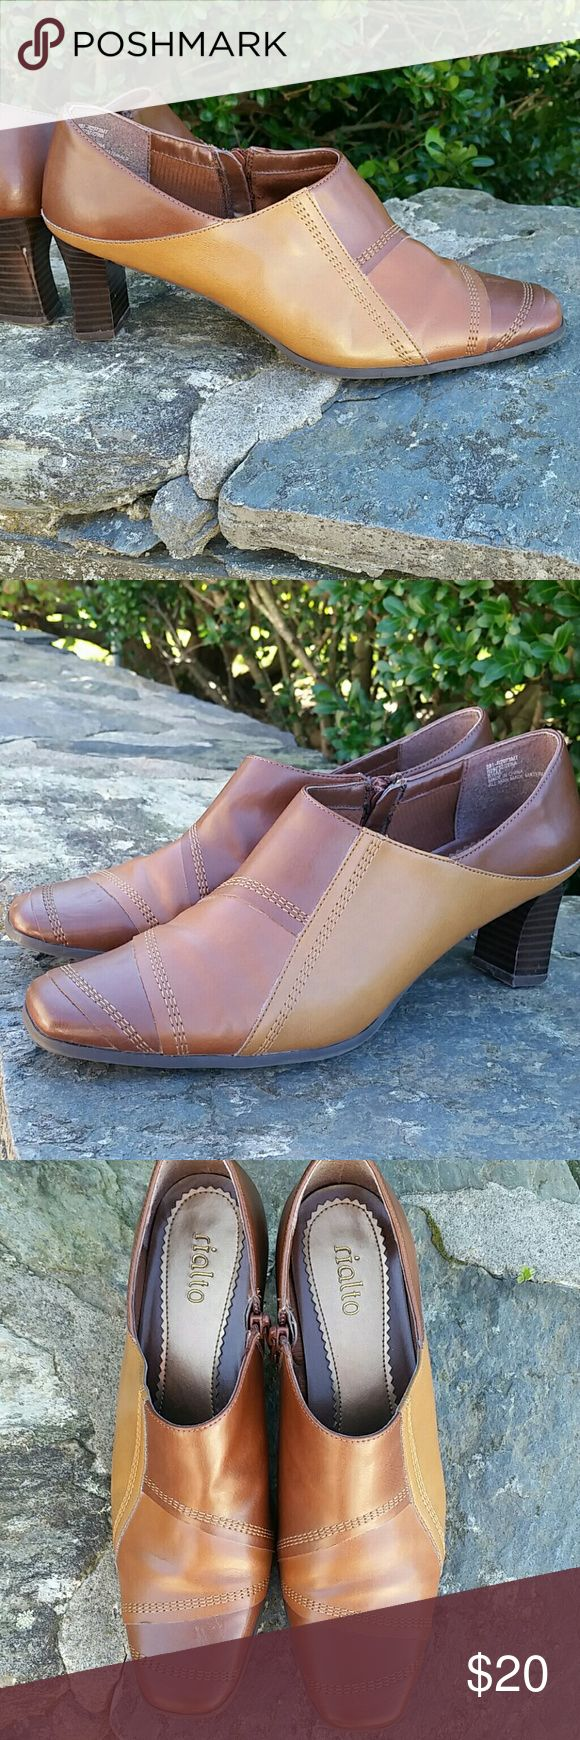 Rialto low ankle patchwork side zip boots Excellent condition like new no rips or stains All zippers work. Very comfortable too! Great for fall season Rialto  Shoes Ankle Boots & Booties